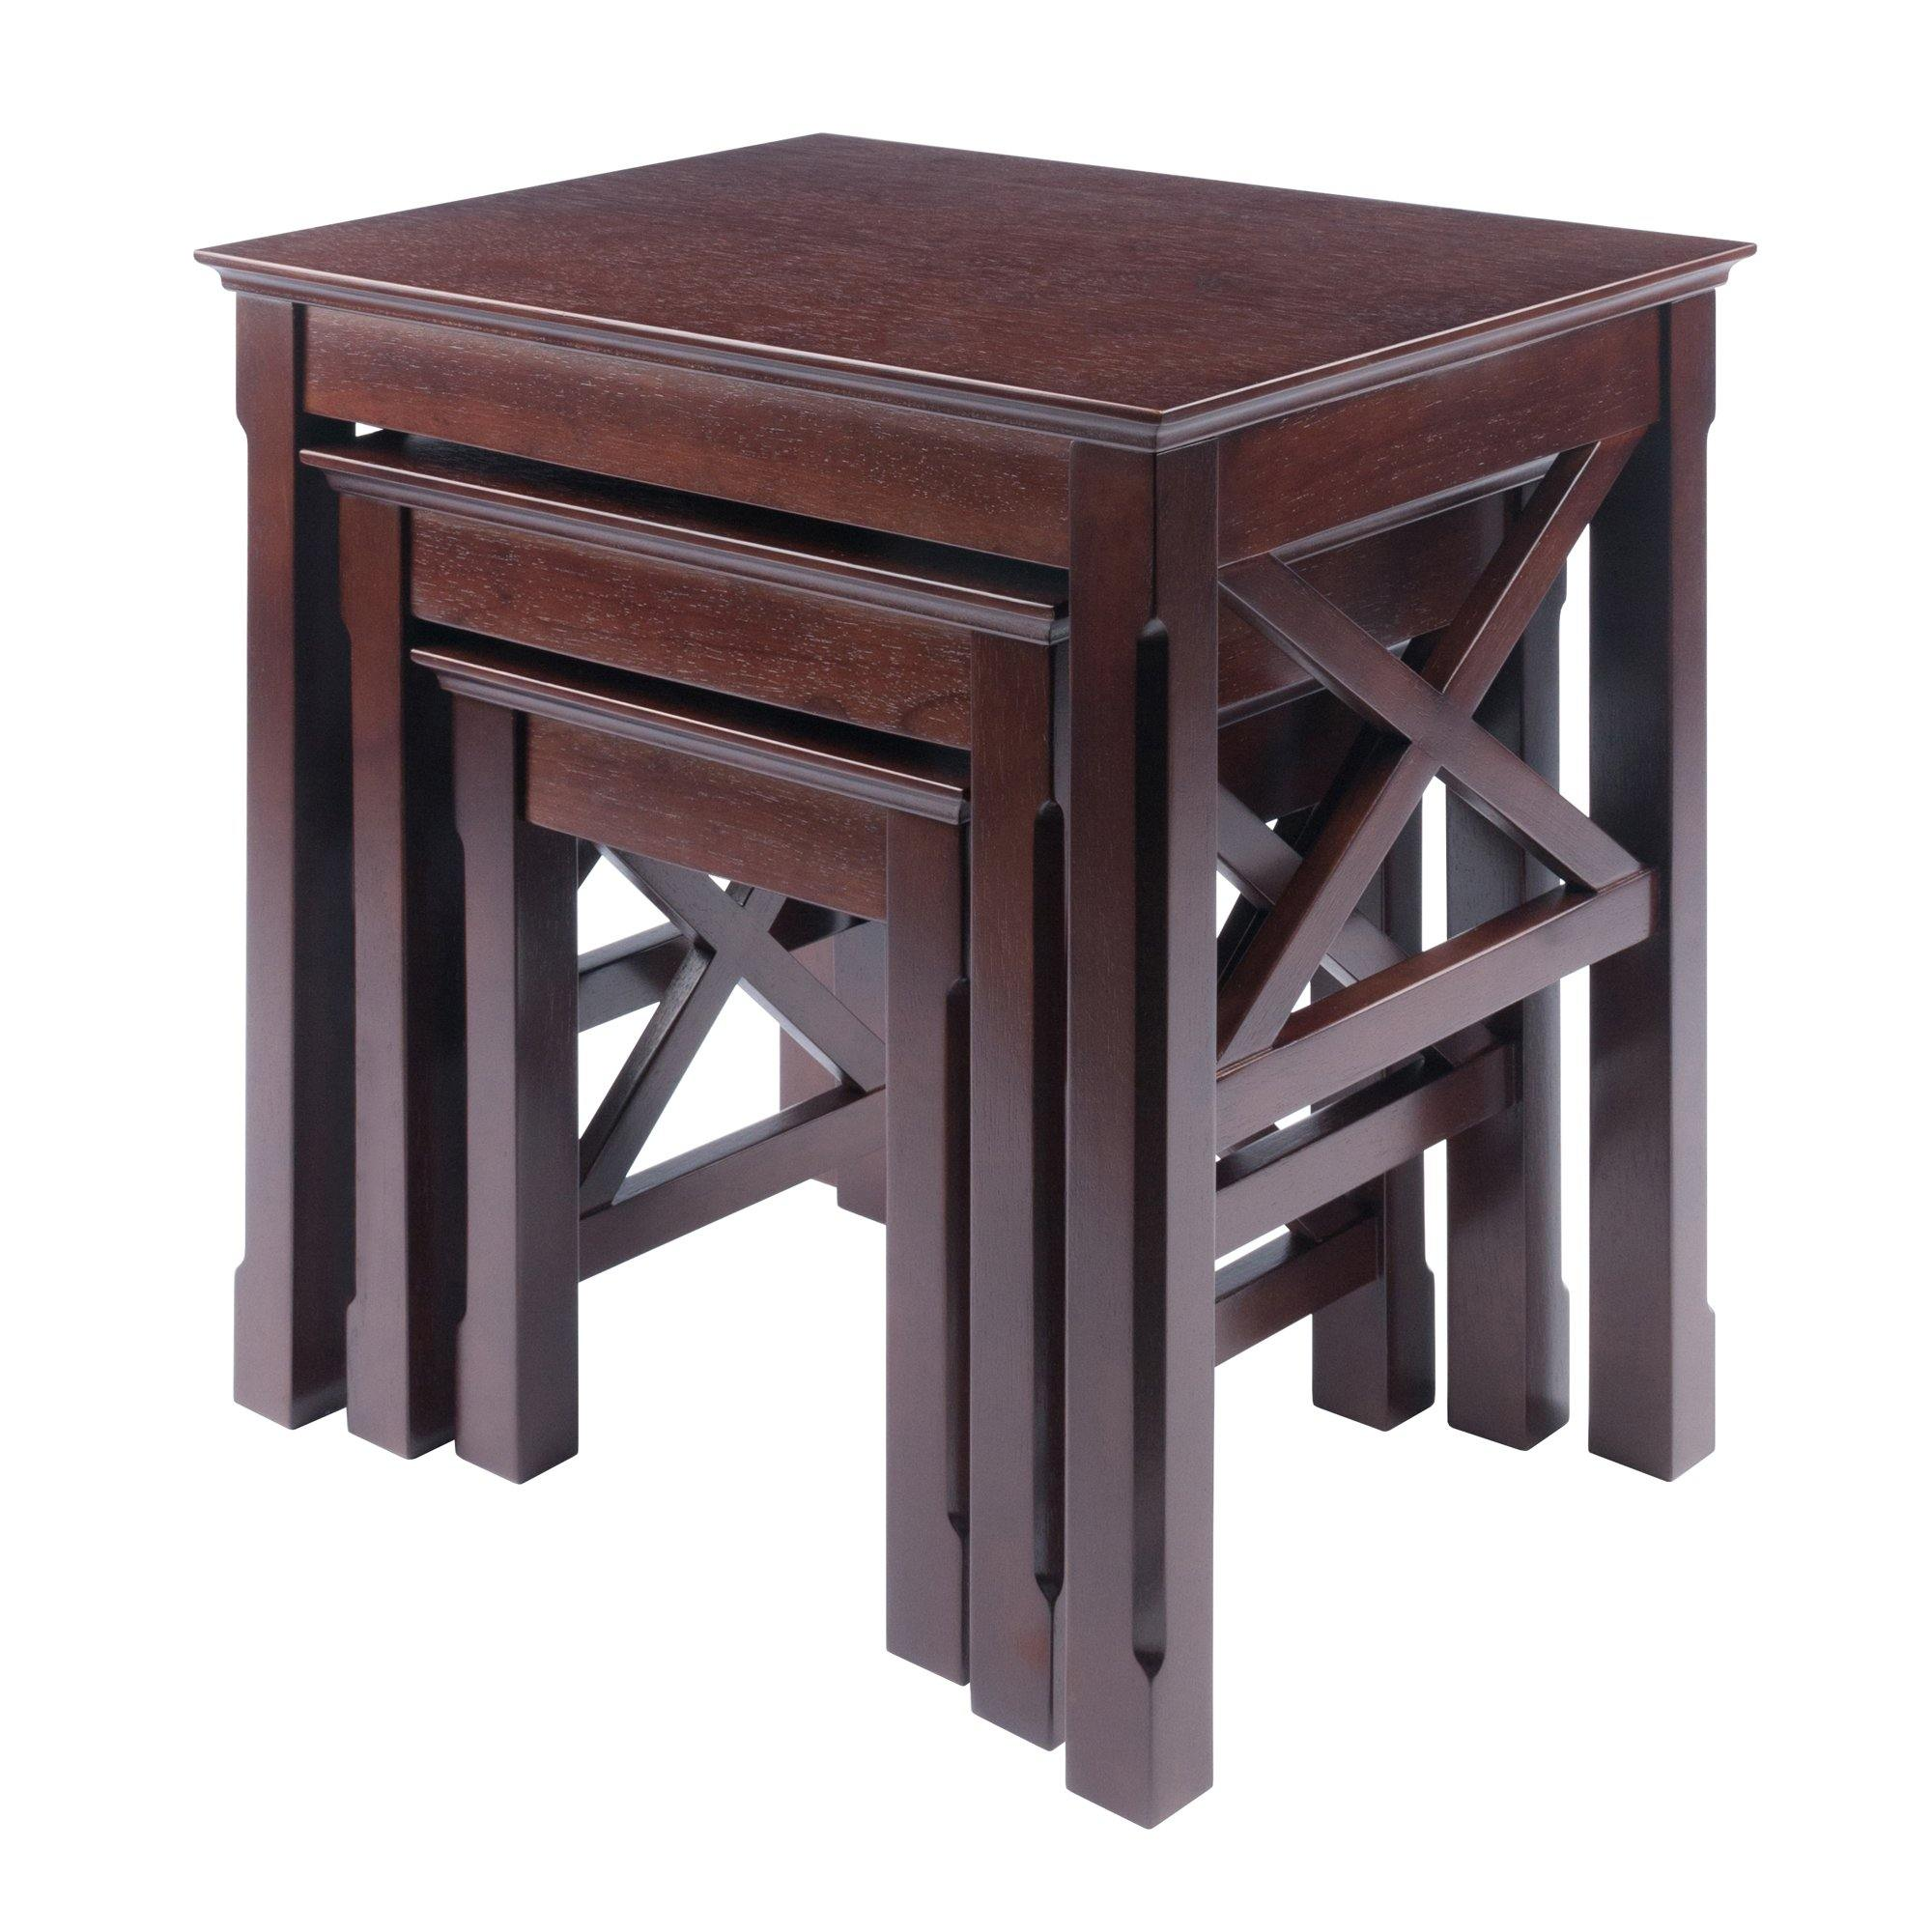 Xola X-Panel Nesting Table Set, Cappuccino - My USA Furniture